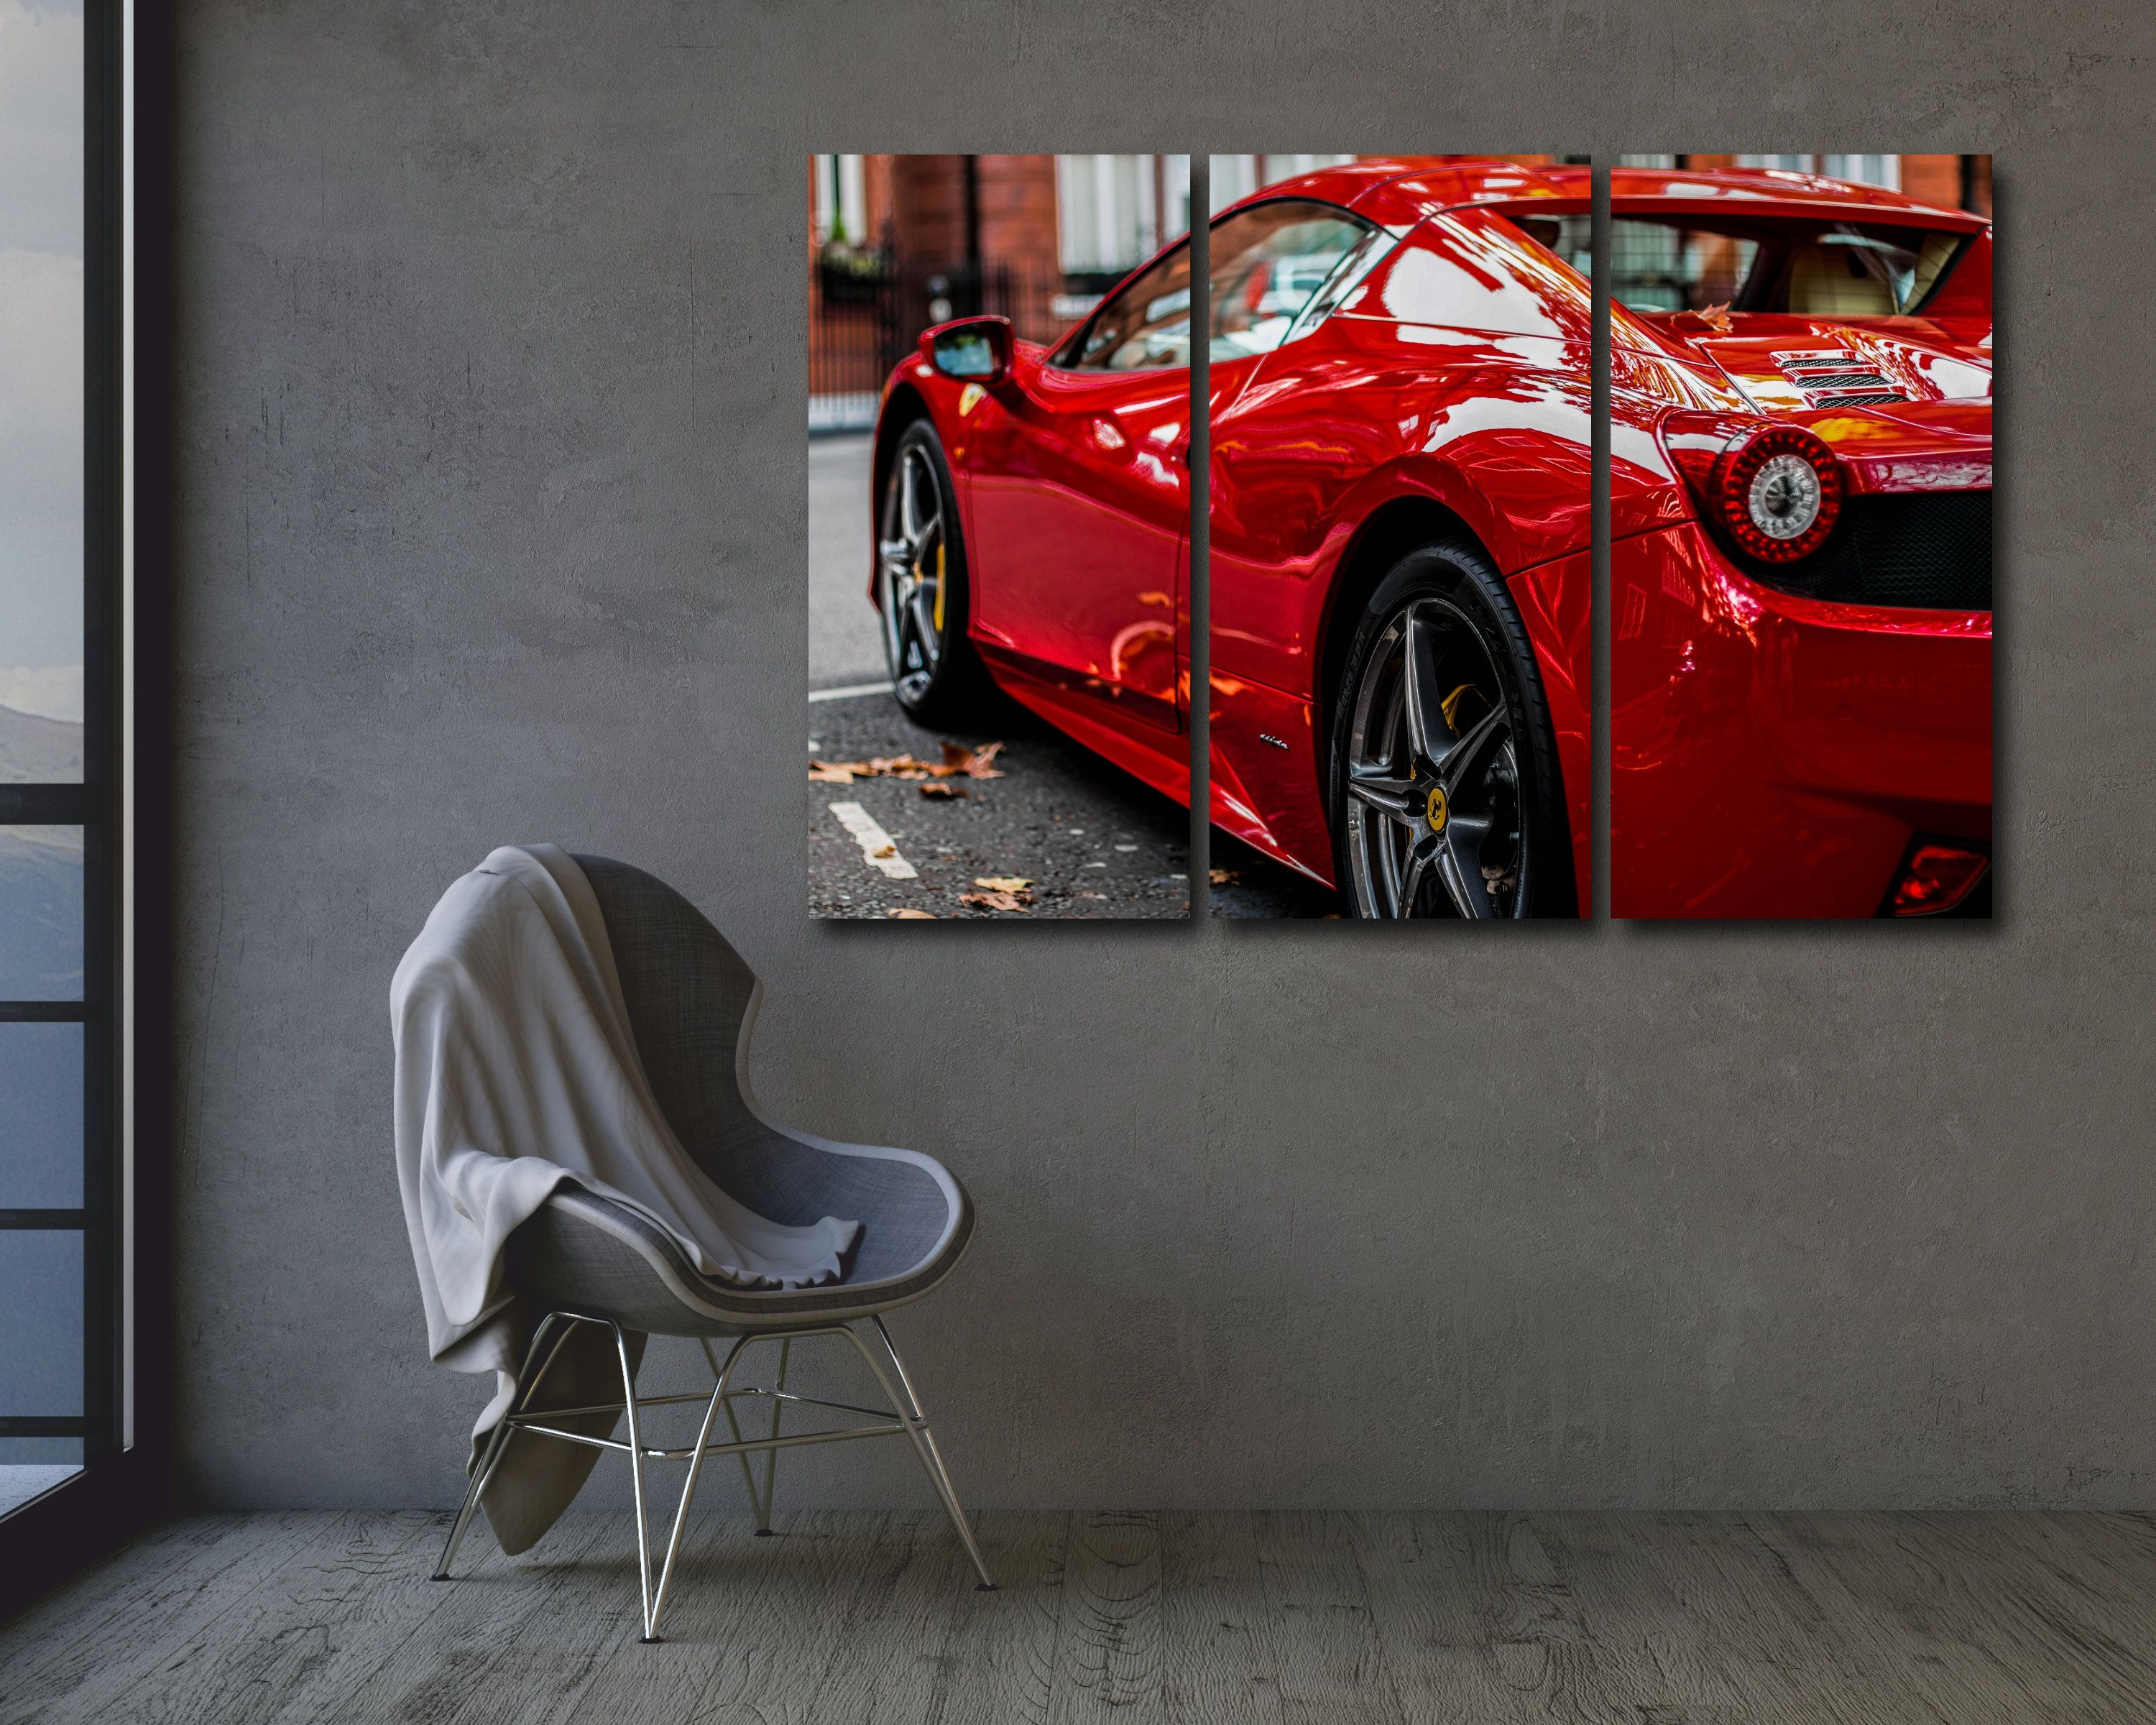 Ferrari Canvas Auto Supercar Autosport Racing Wall Art Home Decor Giclee Printed Canvas Poster Wall Hanging Red Car Canvas Prints Super Cars Home Decor